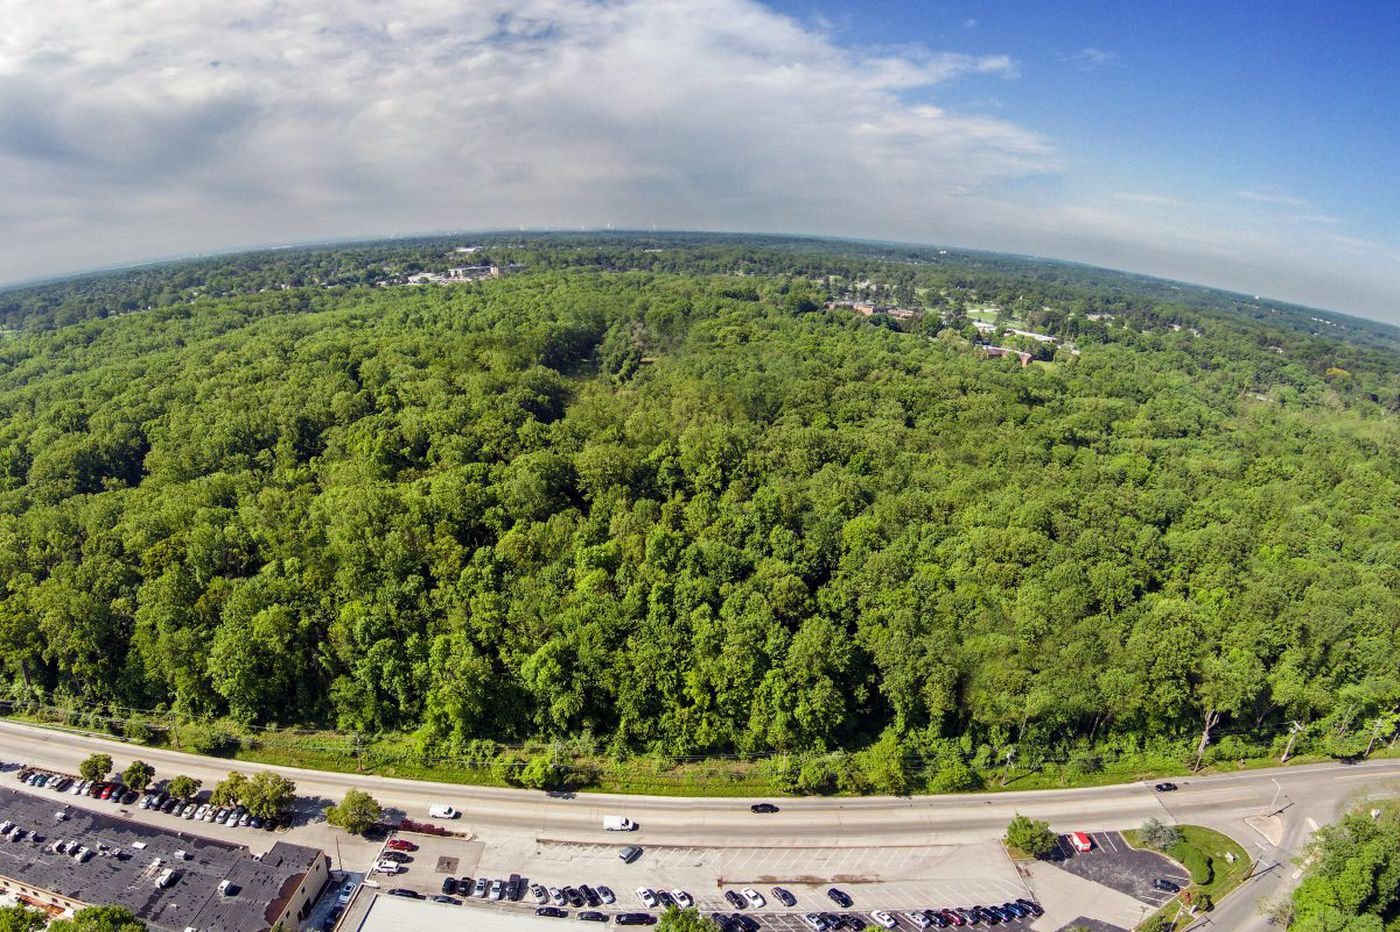 New plan for archdiocesan land in Delaware County includes coveted open space